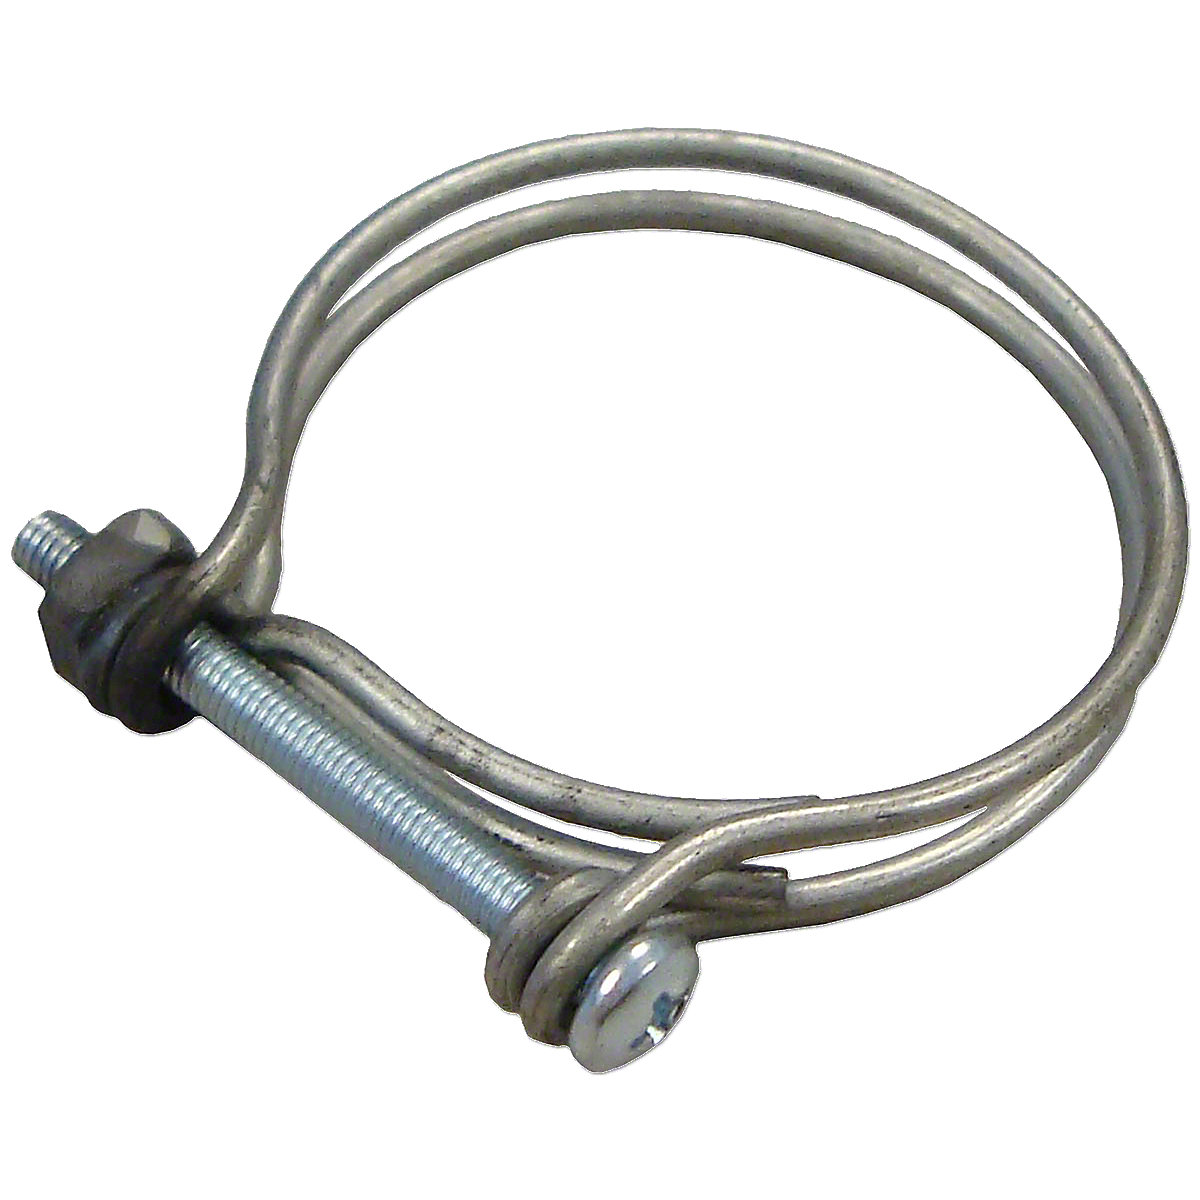 Wire Hose Clamp For Massey Harris And Massey Ferguson.